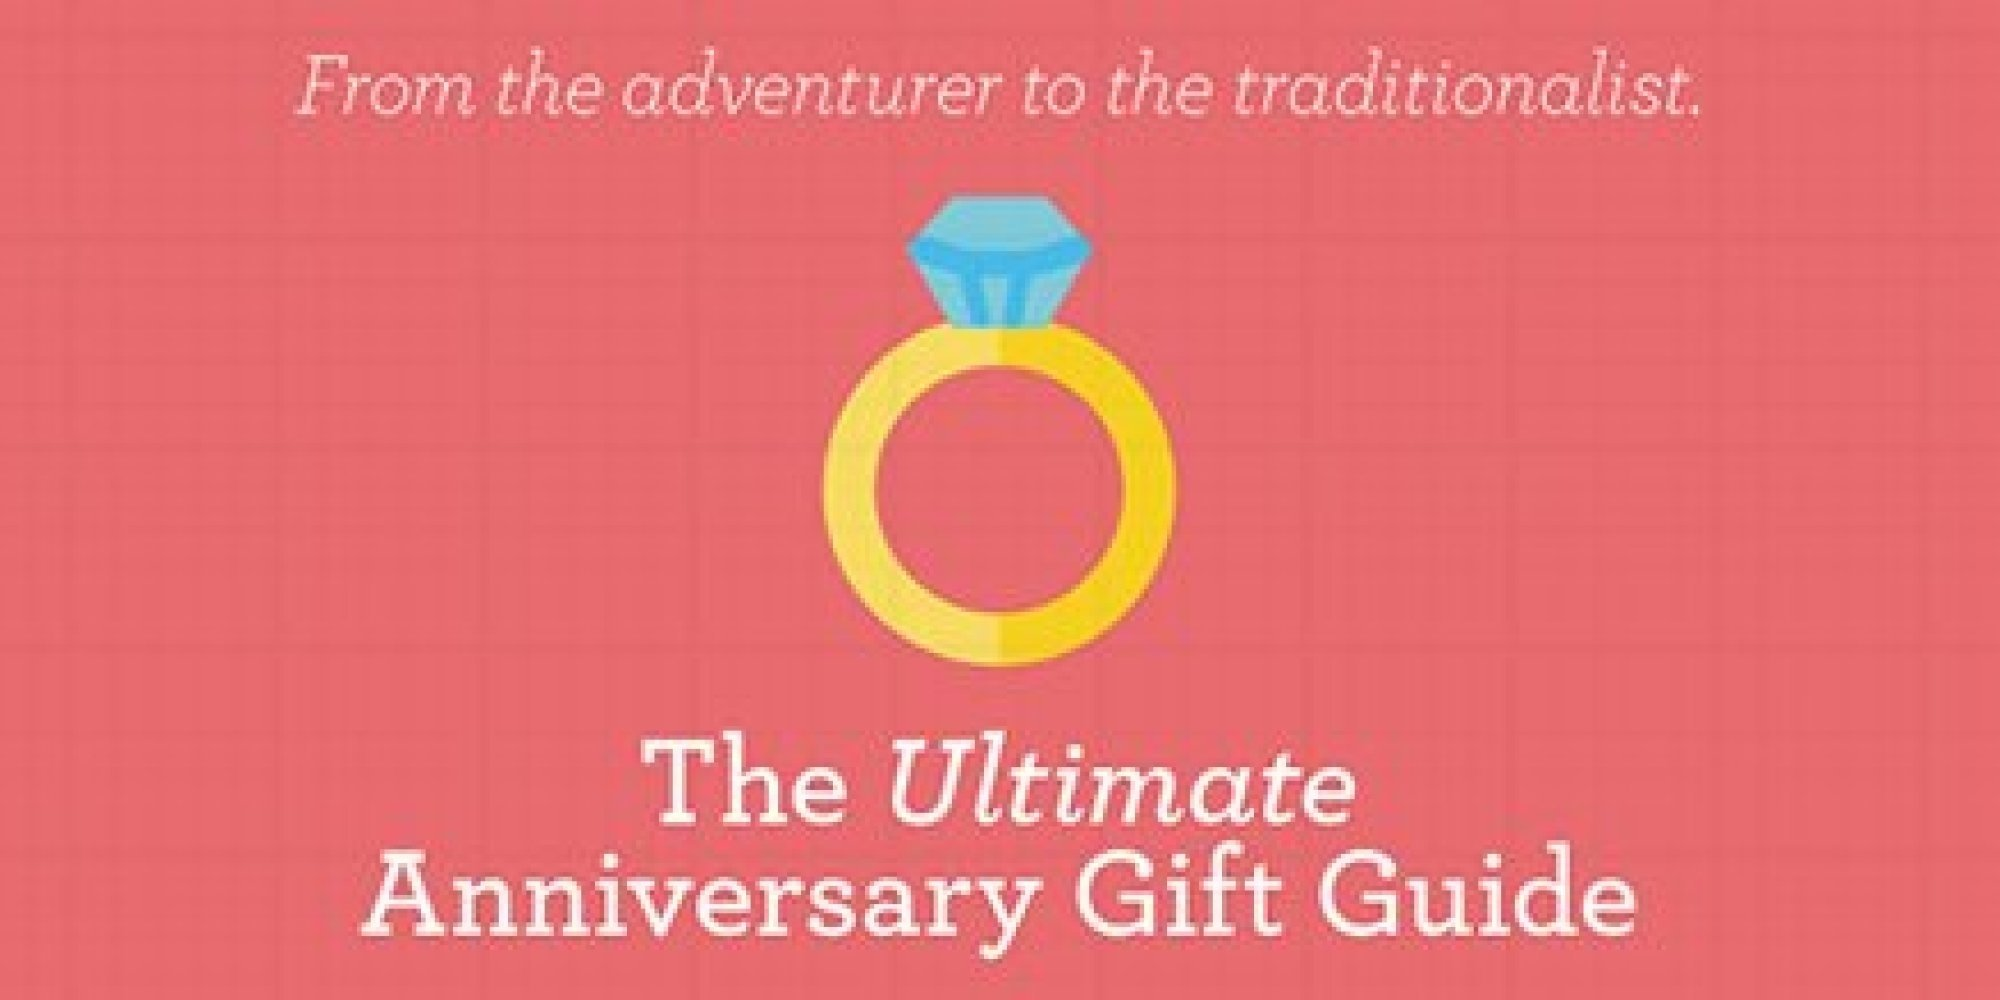 10 Wonderful 9 Year Anniversary Gift Ideas For Her the ultimate anniversary gift guide for every kind of spouse huffpost